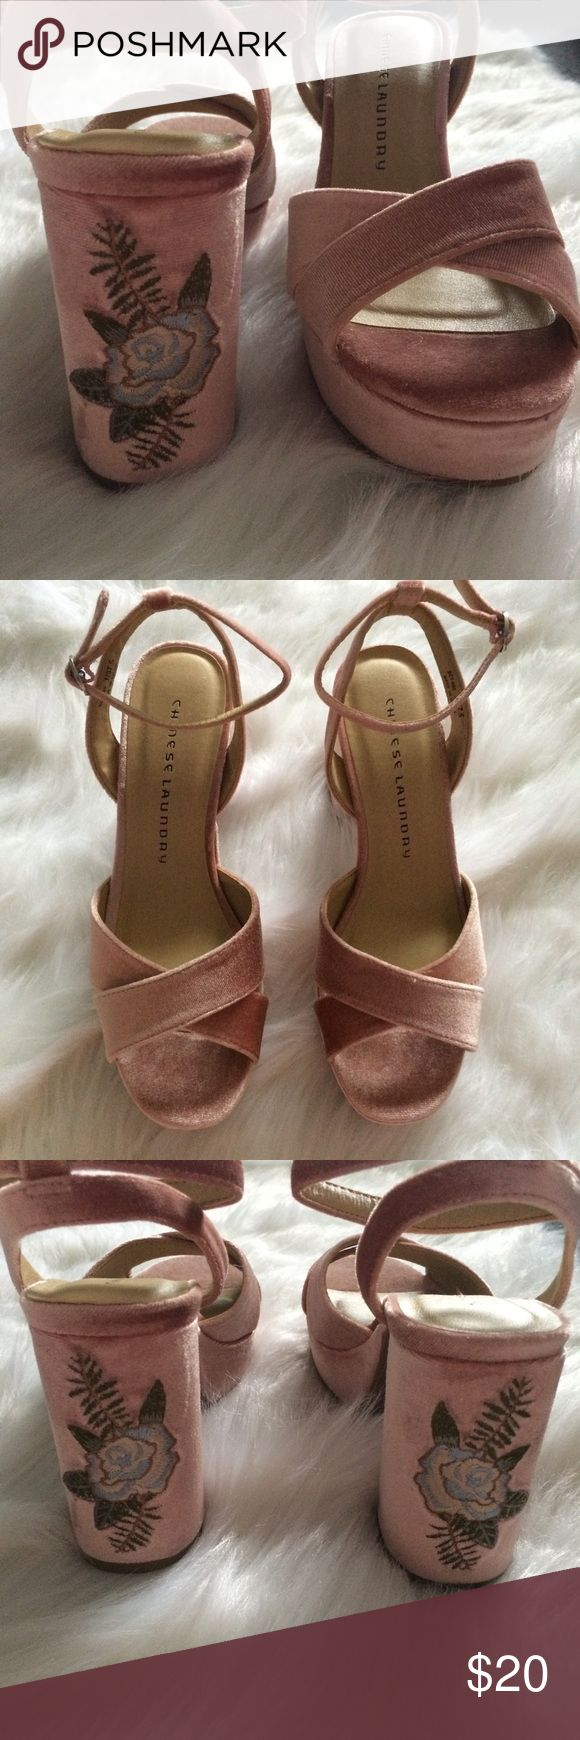 """New Chinese Laundry Velvet Embroidered Heels Gorgeous chunky 4""""in heels in rose pink velvet-like material with flower embroidery  never worn outside of the store but please see photos of rough marks on the heel of show. No box. Chinese Laundry Shoes Heels"""